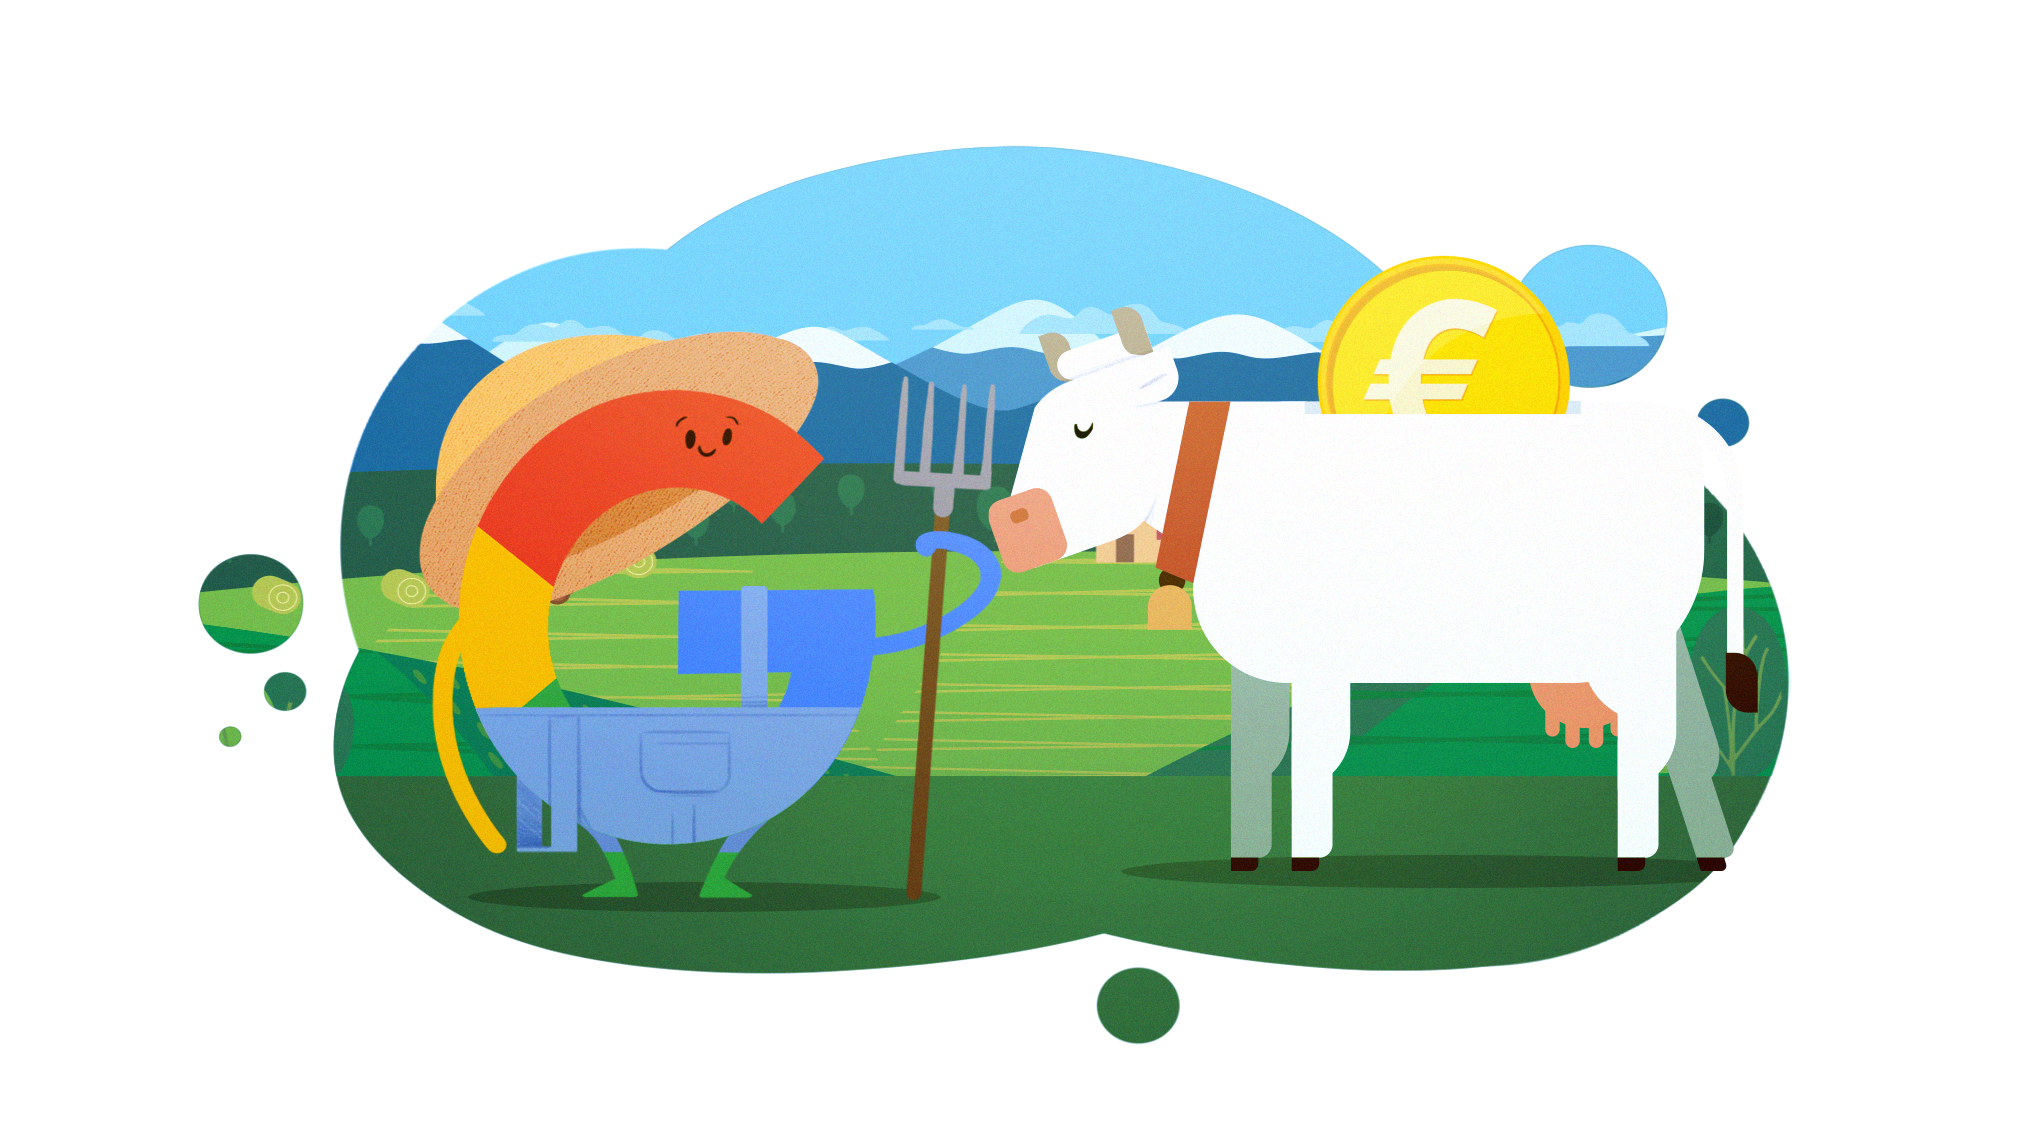 Battle of the Internet Giants | The Google Farm, Cash Cows, One Trick Ponies and Promising Foals.